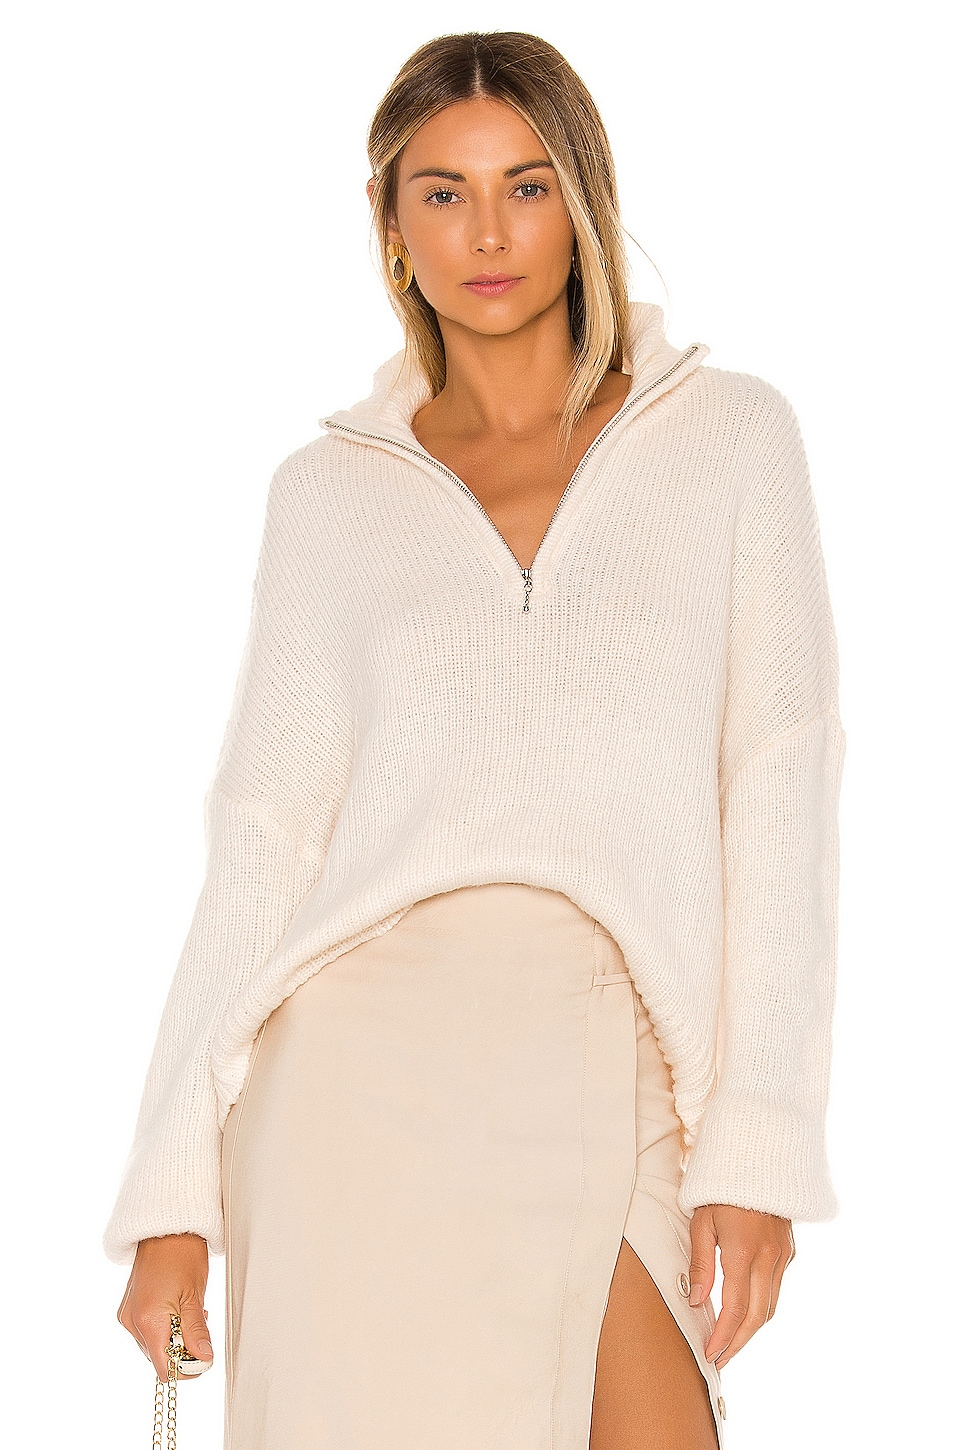 L'Academie Oliver Zip Up Sweater in White